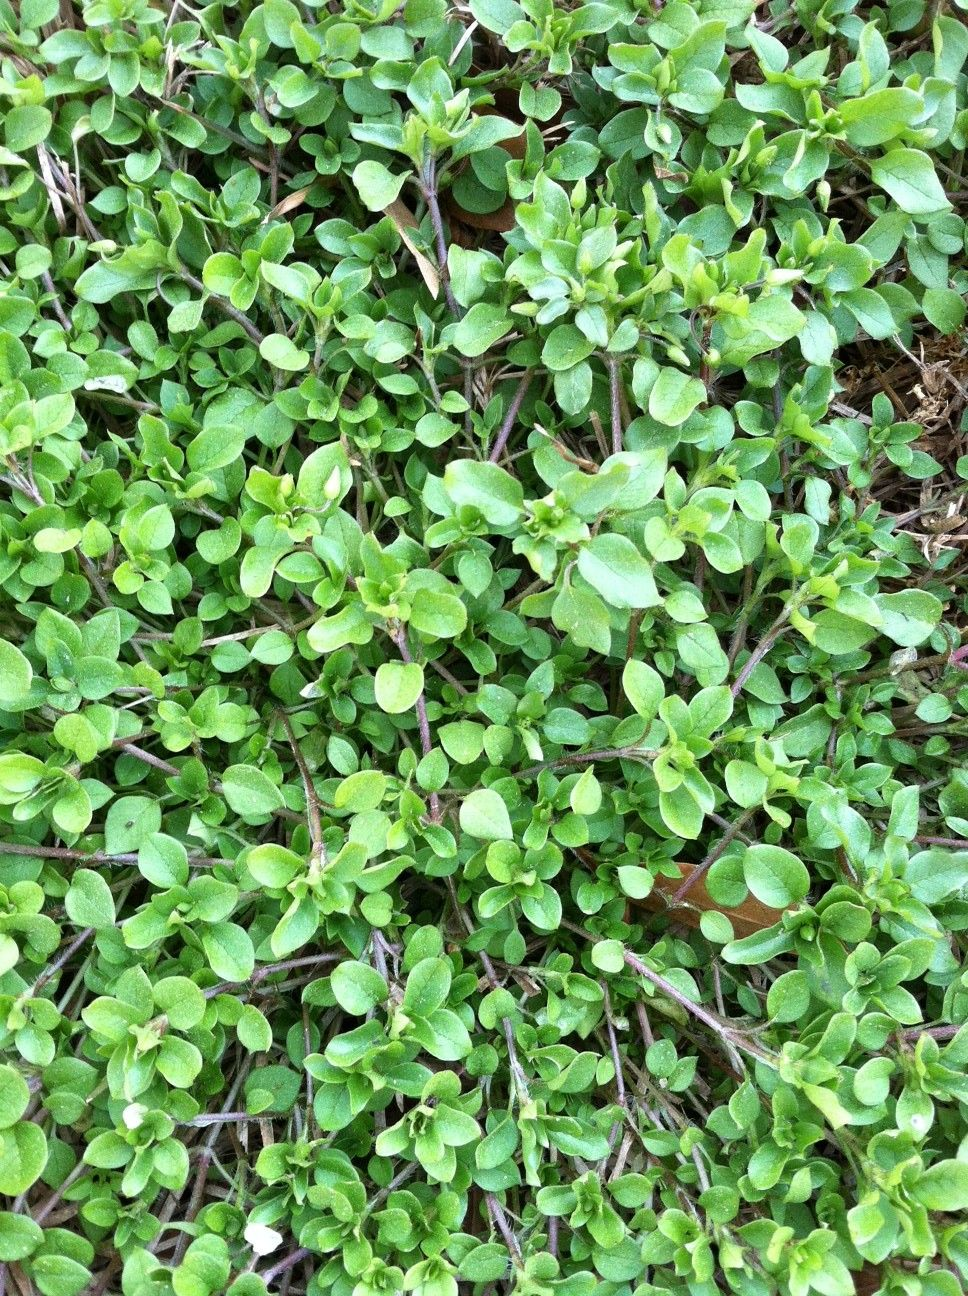 Types of lawn grass weeds - Purslane Is A Common Broad Leaf Weeds Found In Savannah Georgia